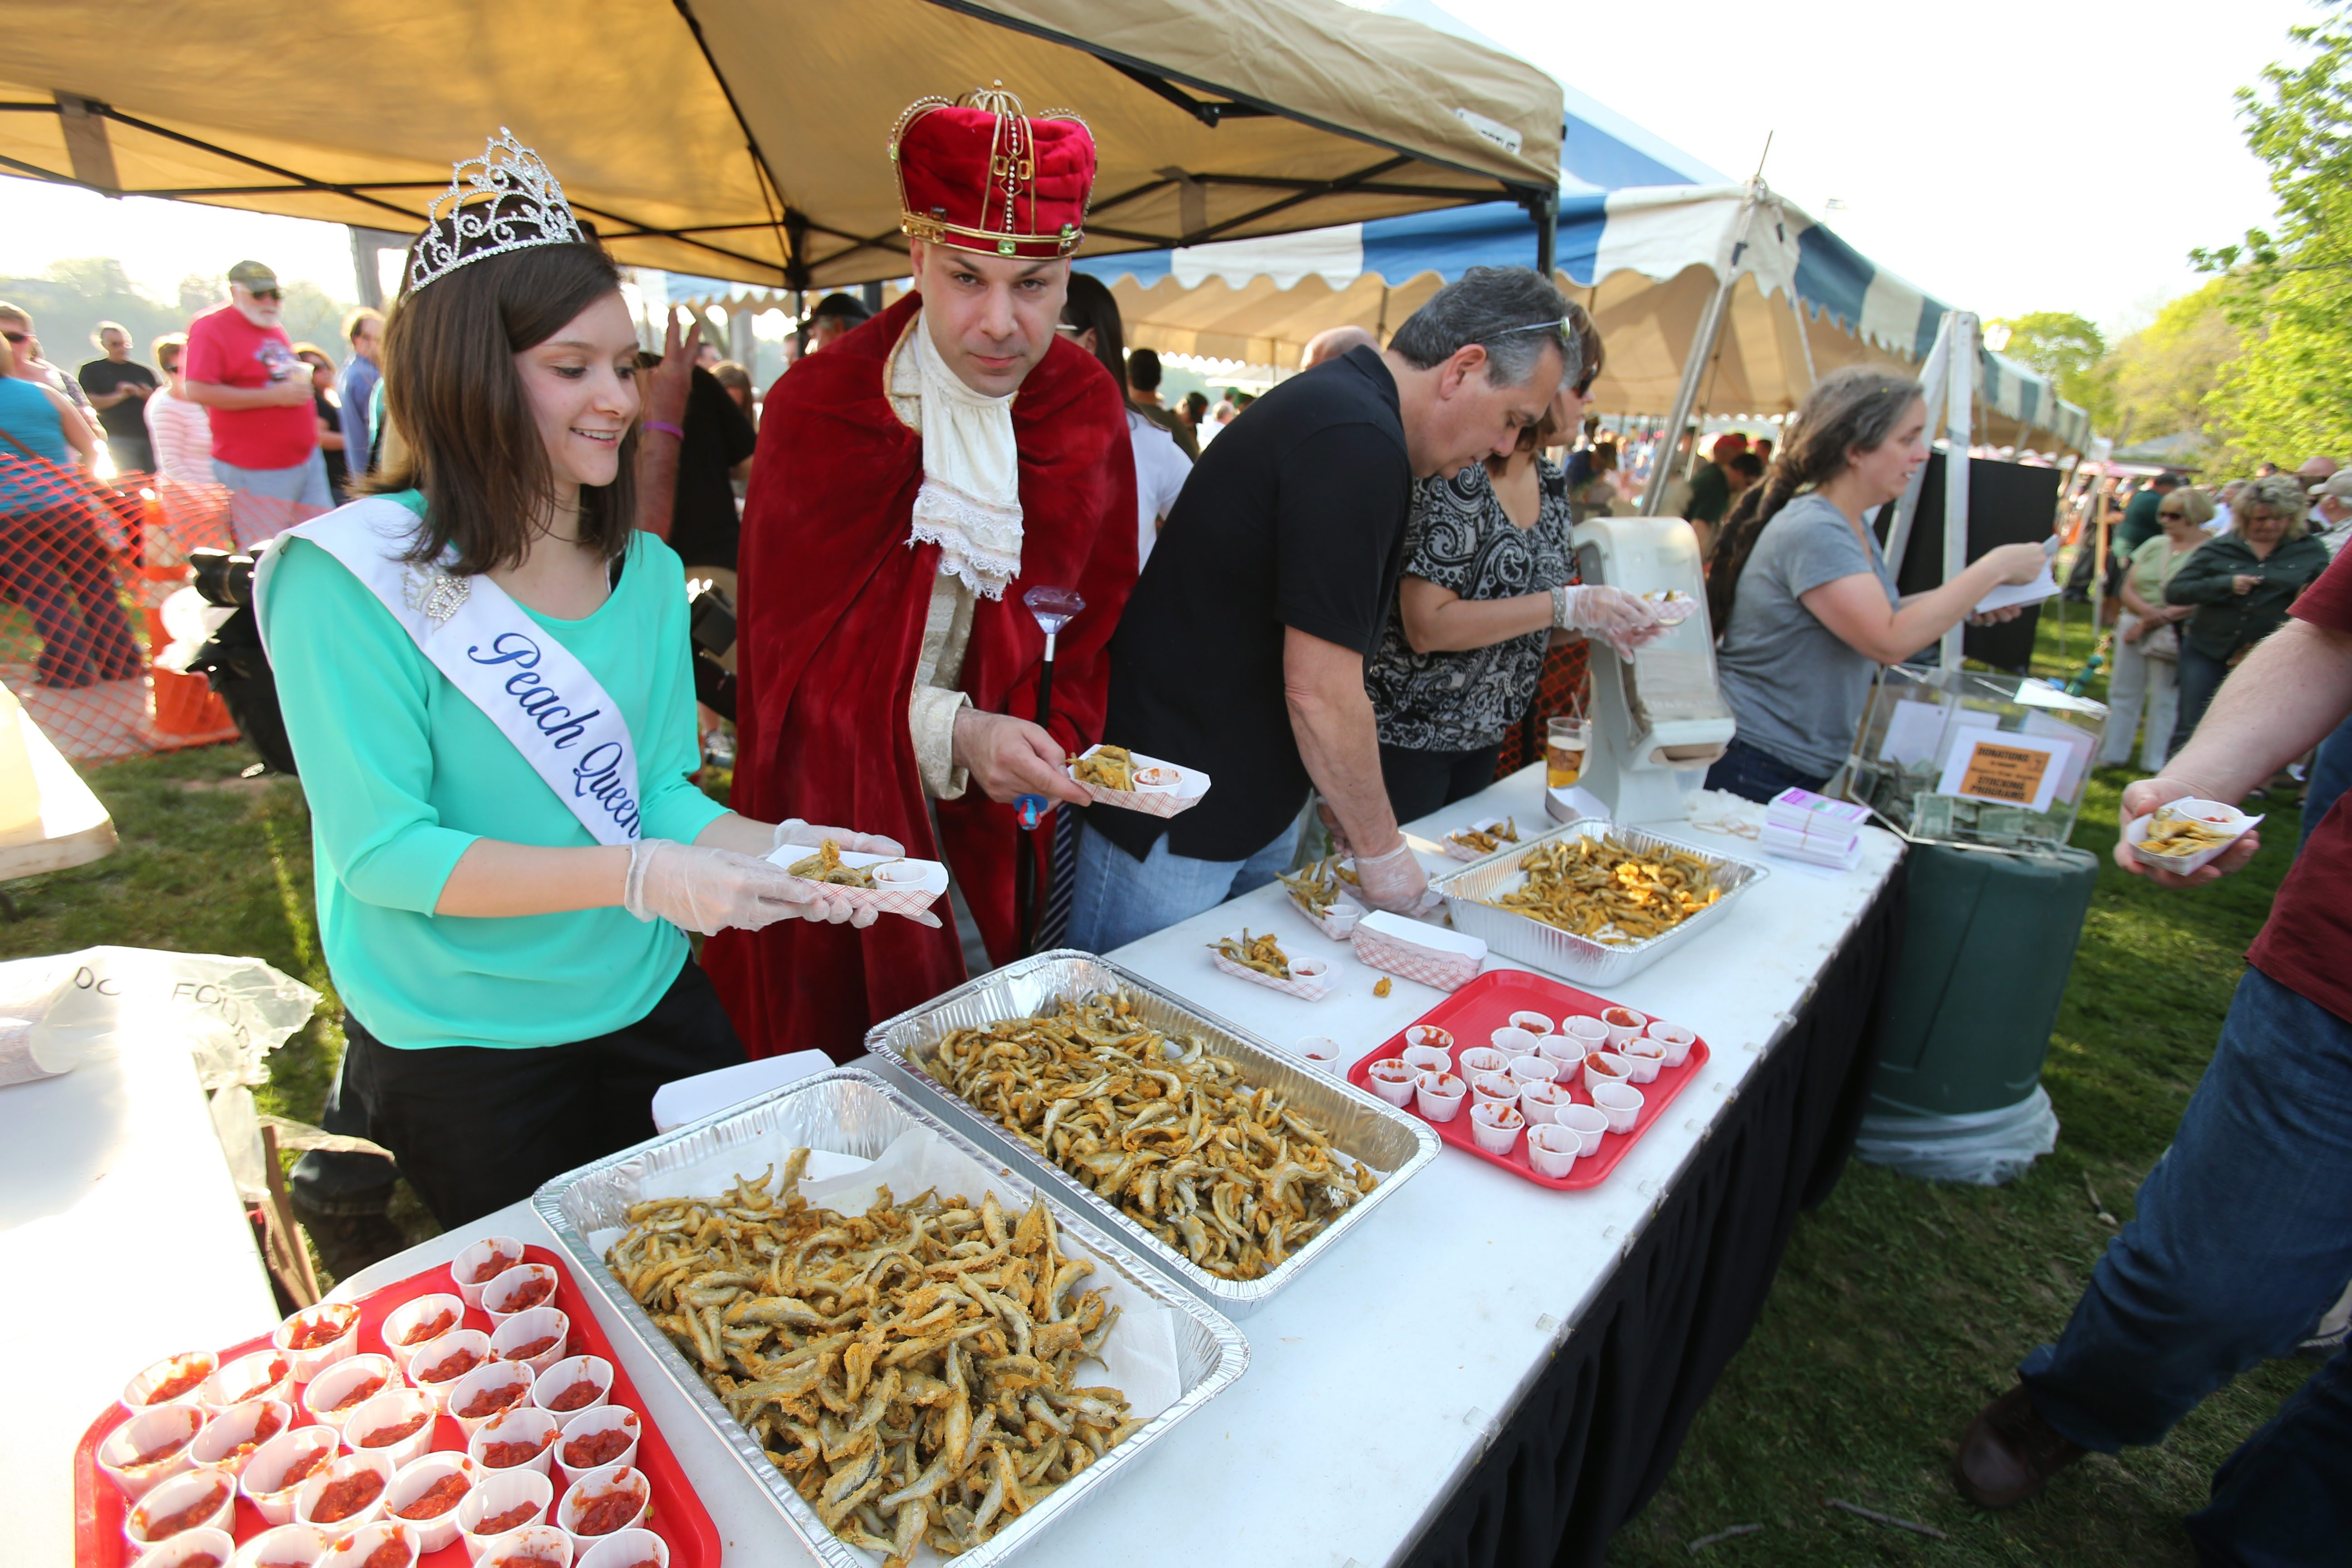 Niagara County Peach Queen Maggie Dorian, left, and Smelt King Ken Scibetta served some of the fried creatures at a recent Smelt Festival in Lewiston.